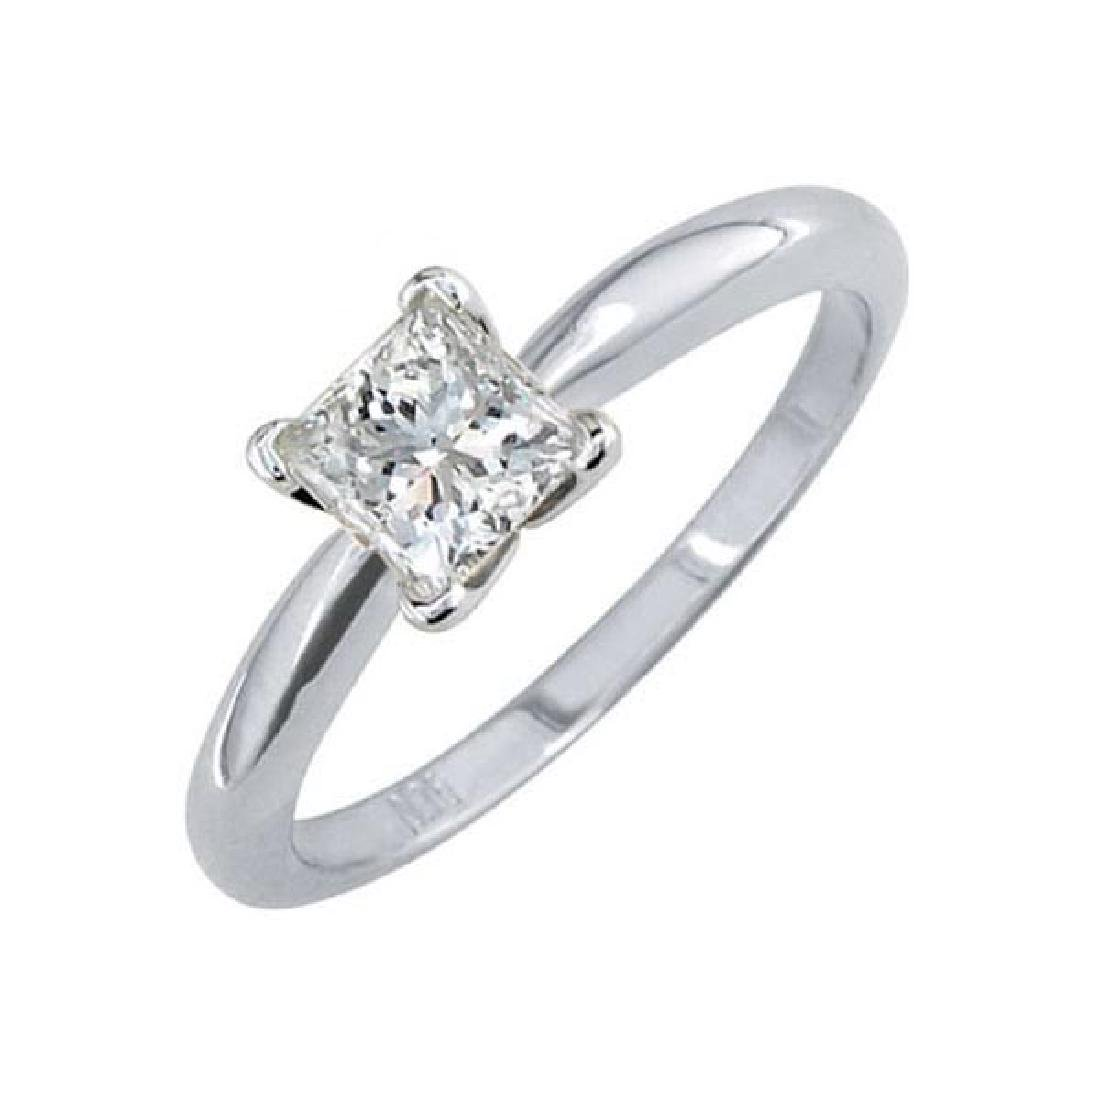 Certified 1 CTW Princess Diamond Solitaire 14k Ring F/S